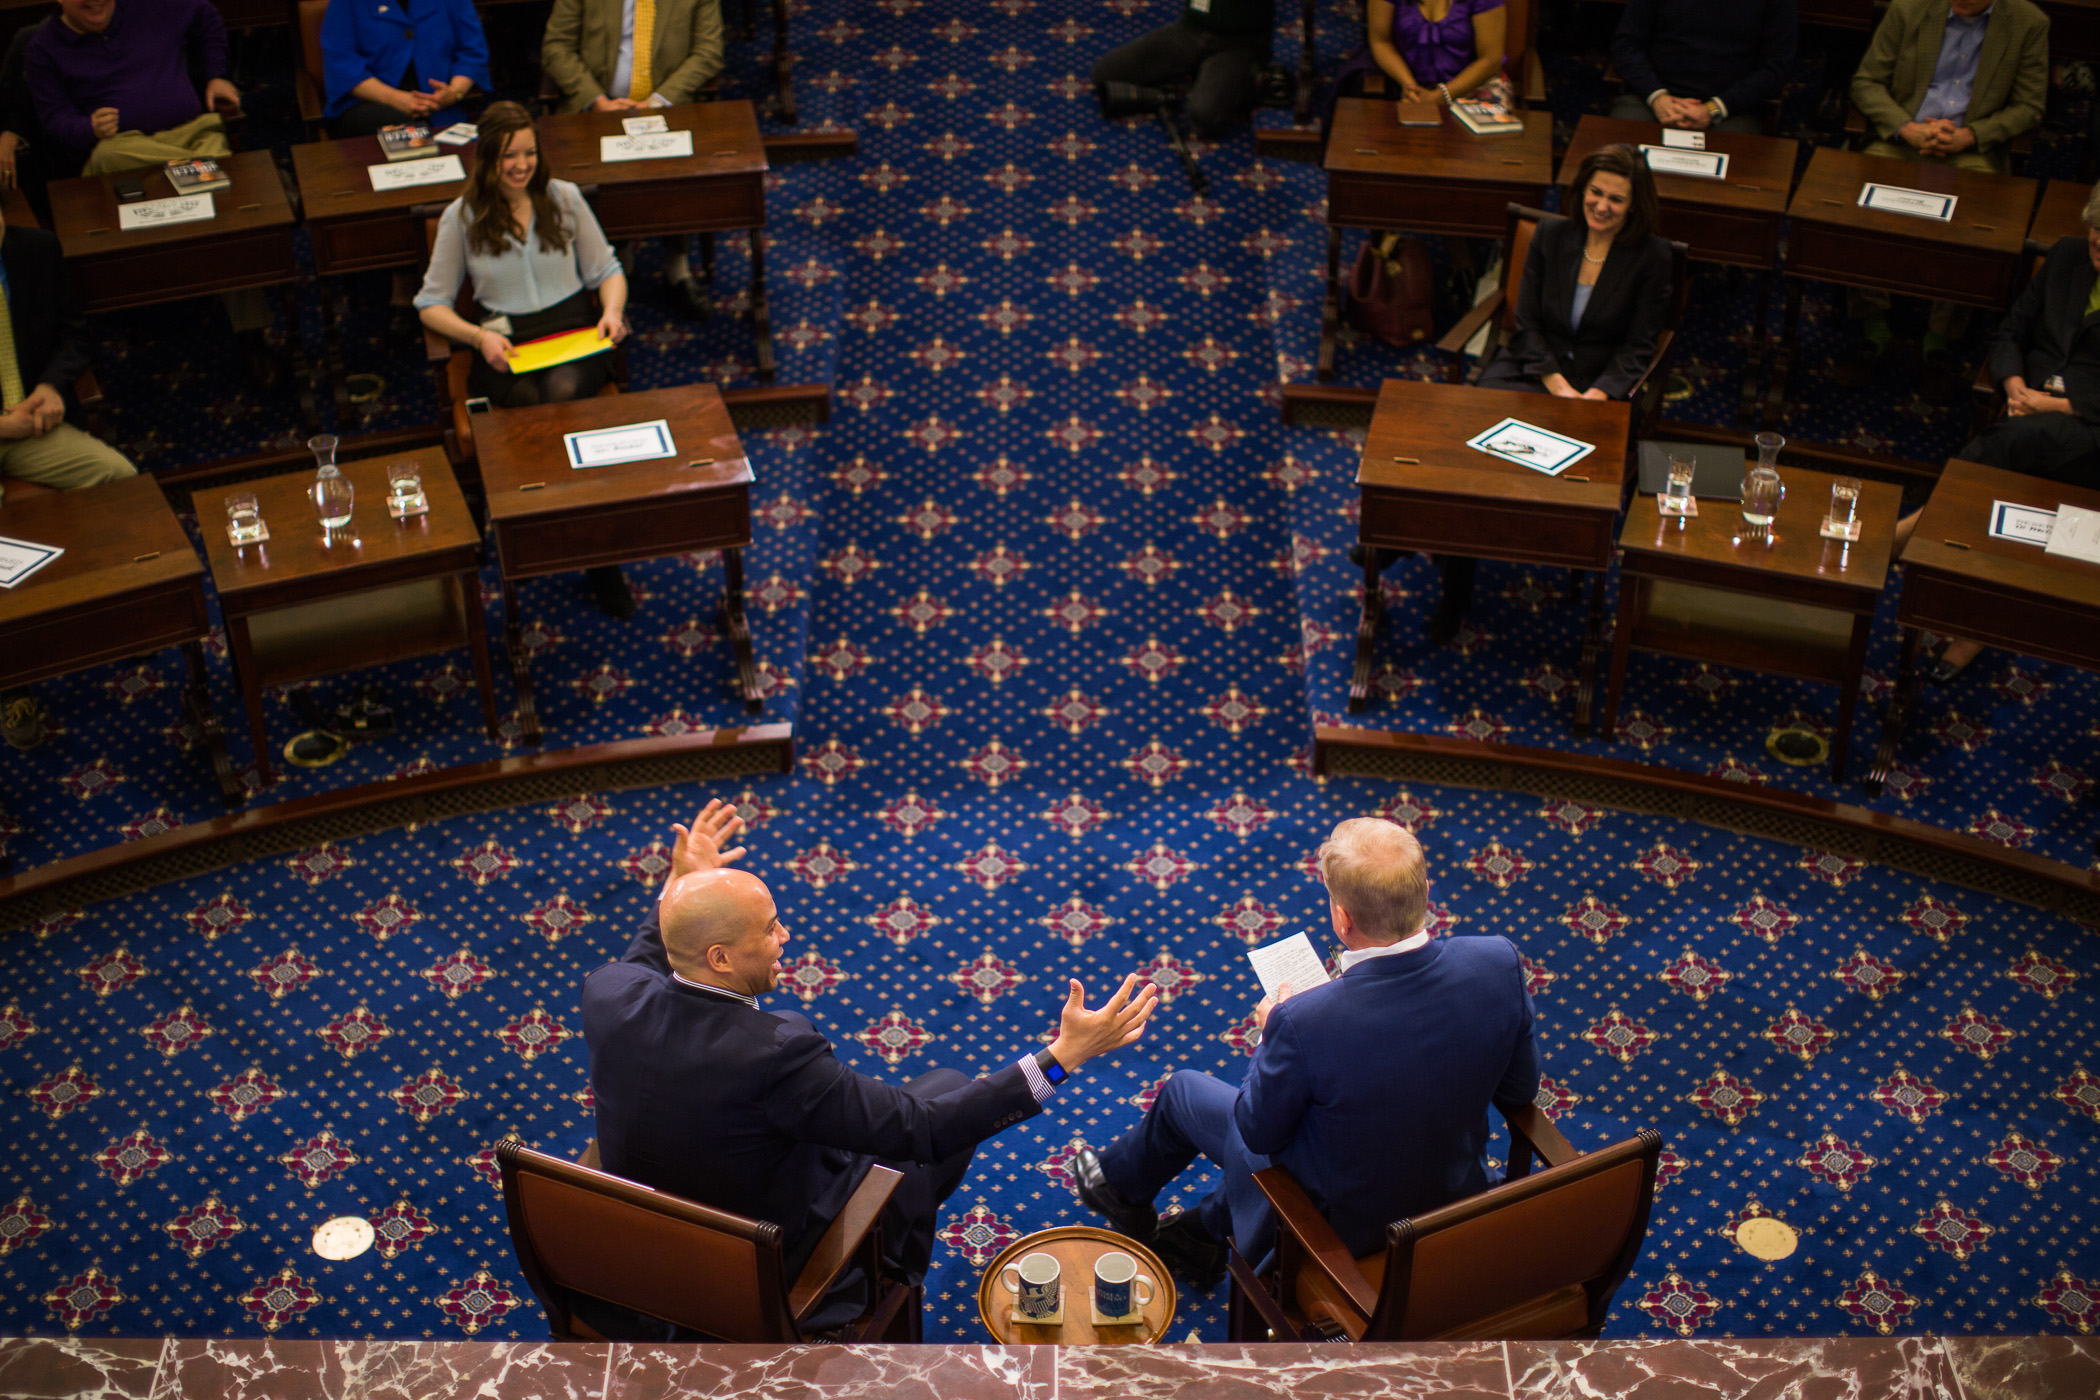 Senator Cory Booker speaks at the Edward M. Kennedy (EMK) Institute's public program, Getting to the Point, which was moderated by Tom Ashbrook